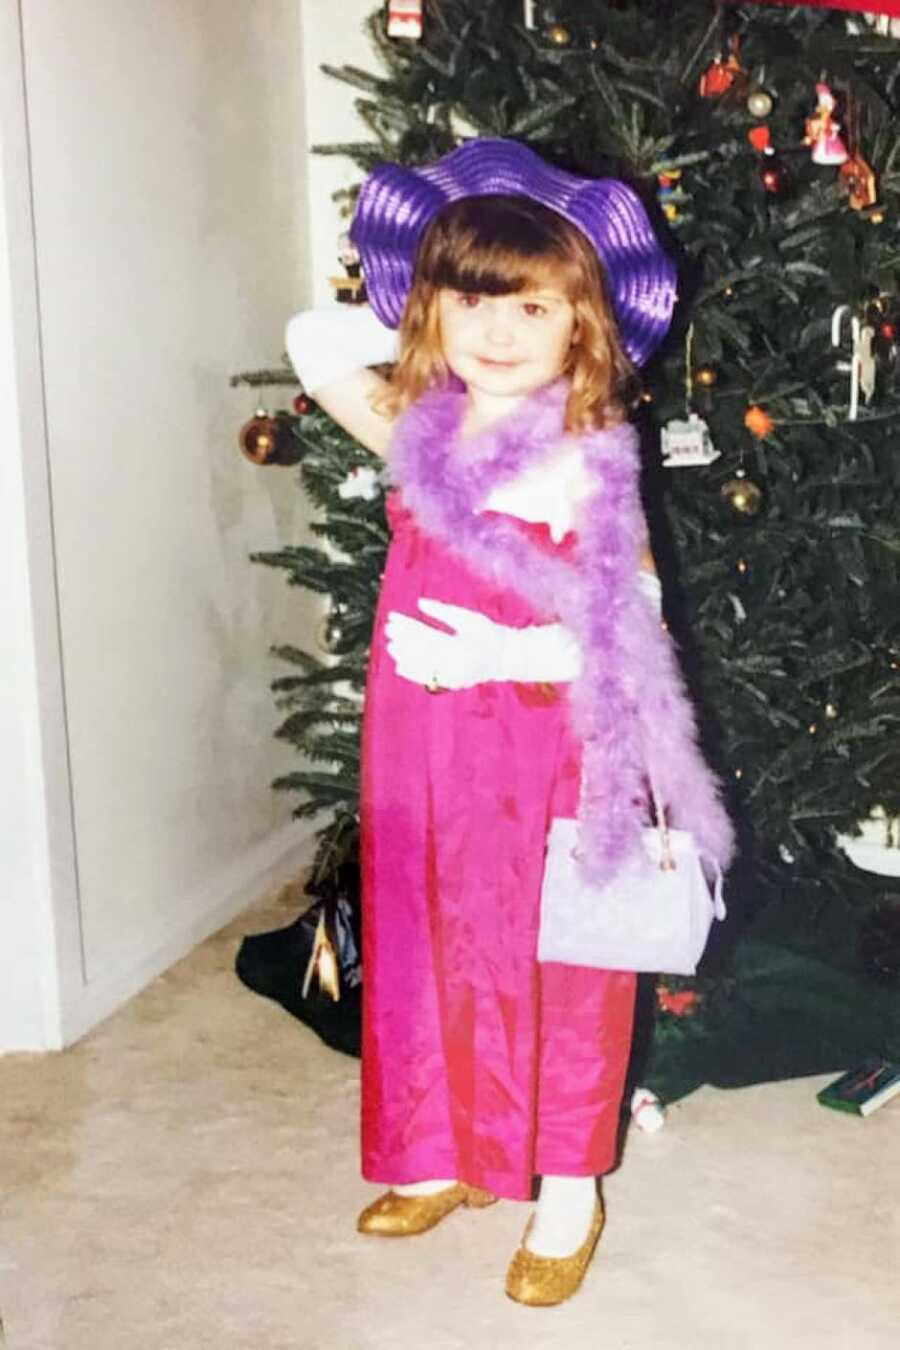 Little girl dressed in a pink dress with a purple hat, feather boa, purse, and white gloves poses in front of a Christmas tree